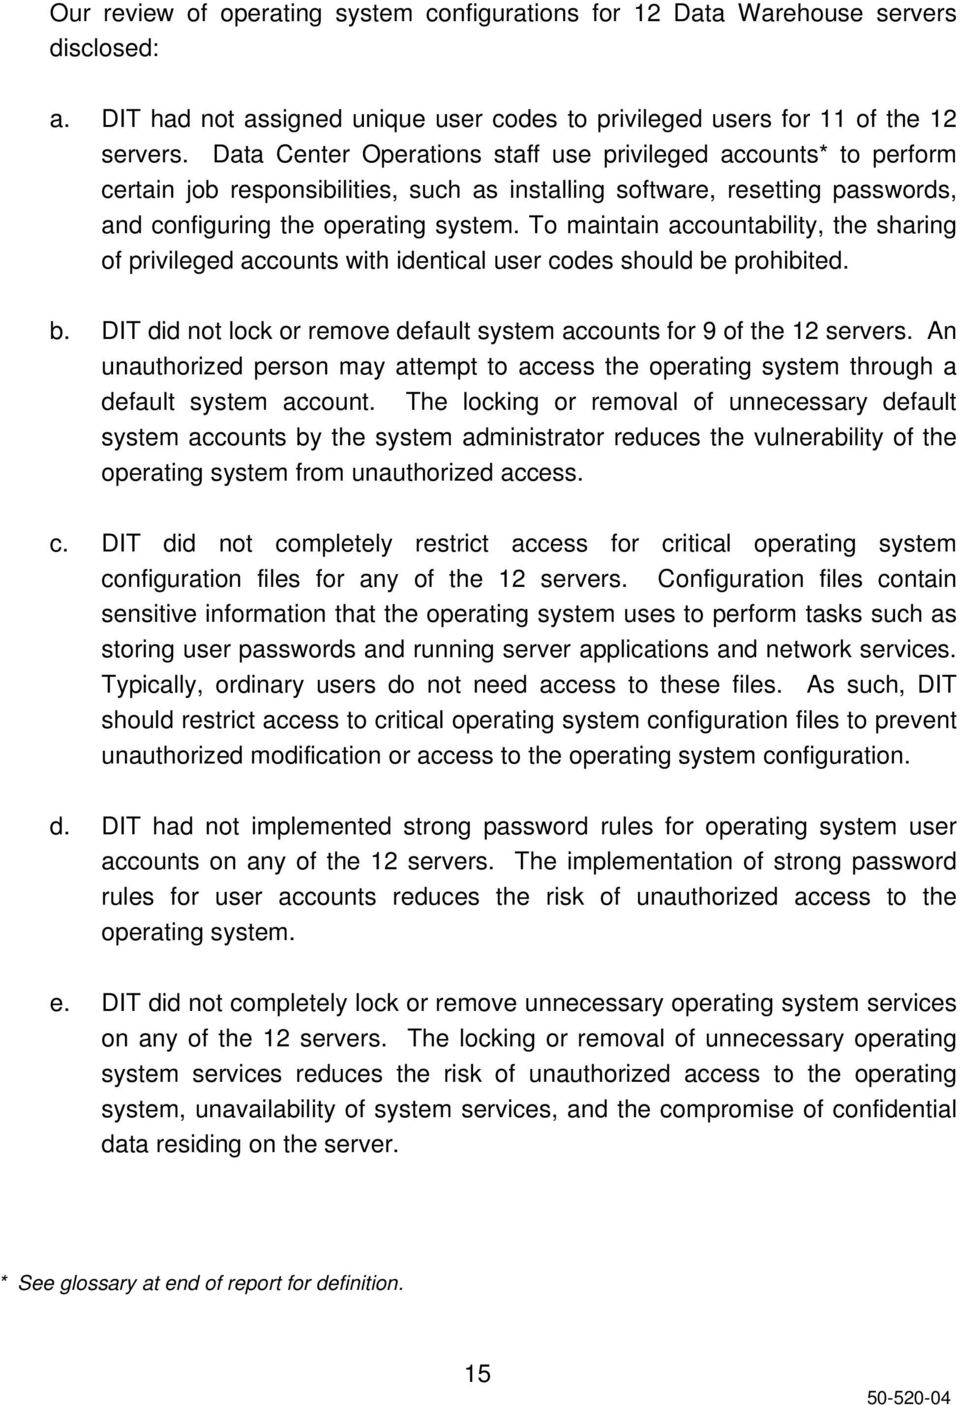 To maintain accountability, the sharing of privileged accounts with identical user codes should be prohibited. b. DIT did not lock or remove default system accounts for 9 of the 12 servers.